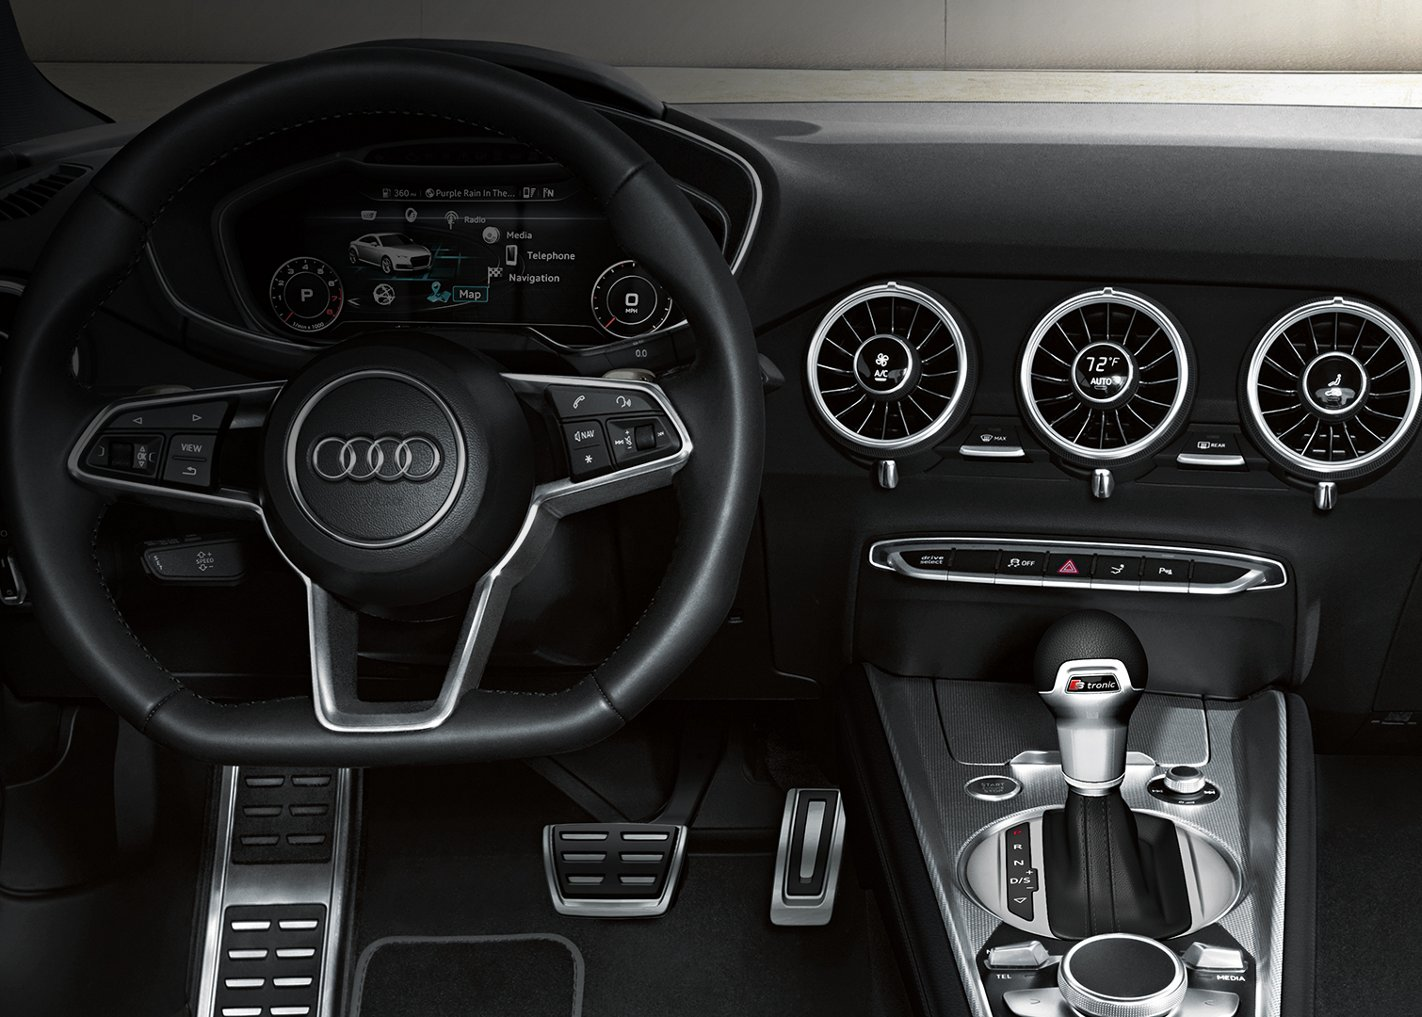 New Audi TT Interior main image